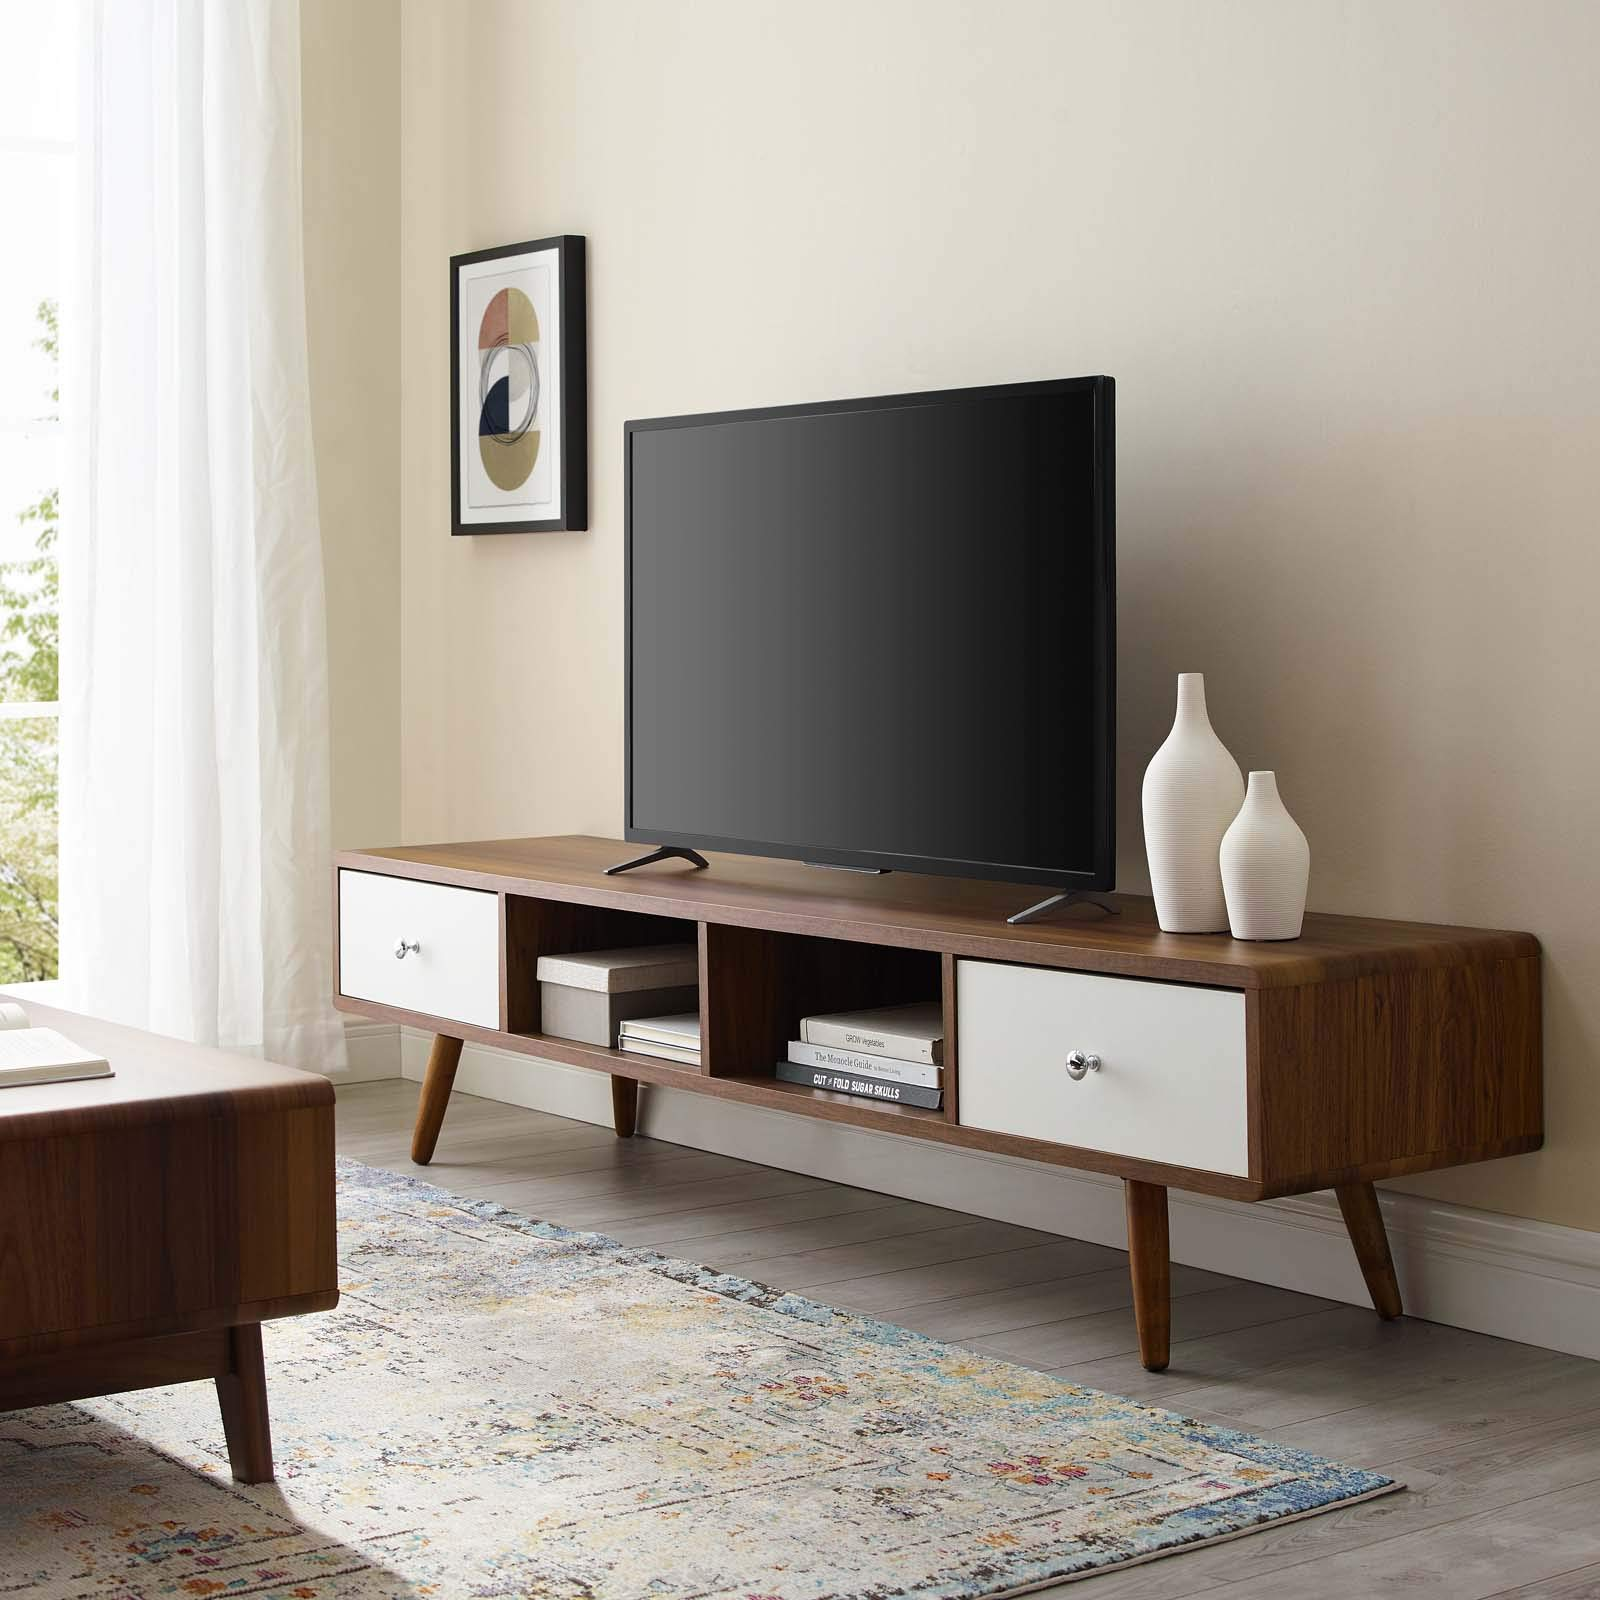 Modway Transmit 70'' Mid-Century Modern Low Profile Media Console Entertainment TV Stand in Walnut White by Modway